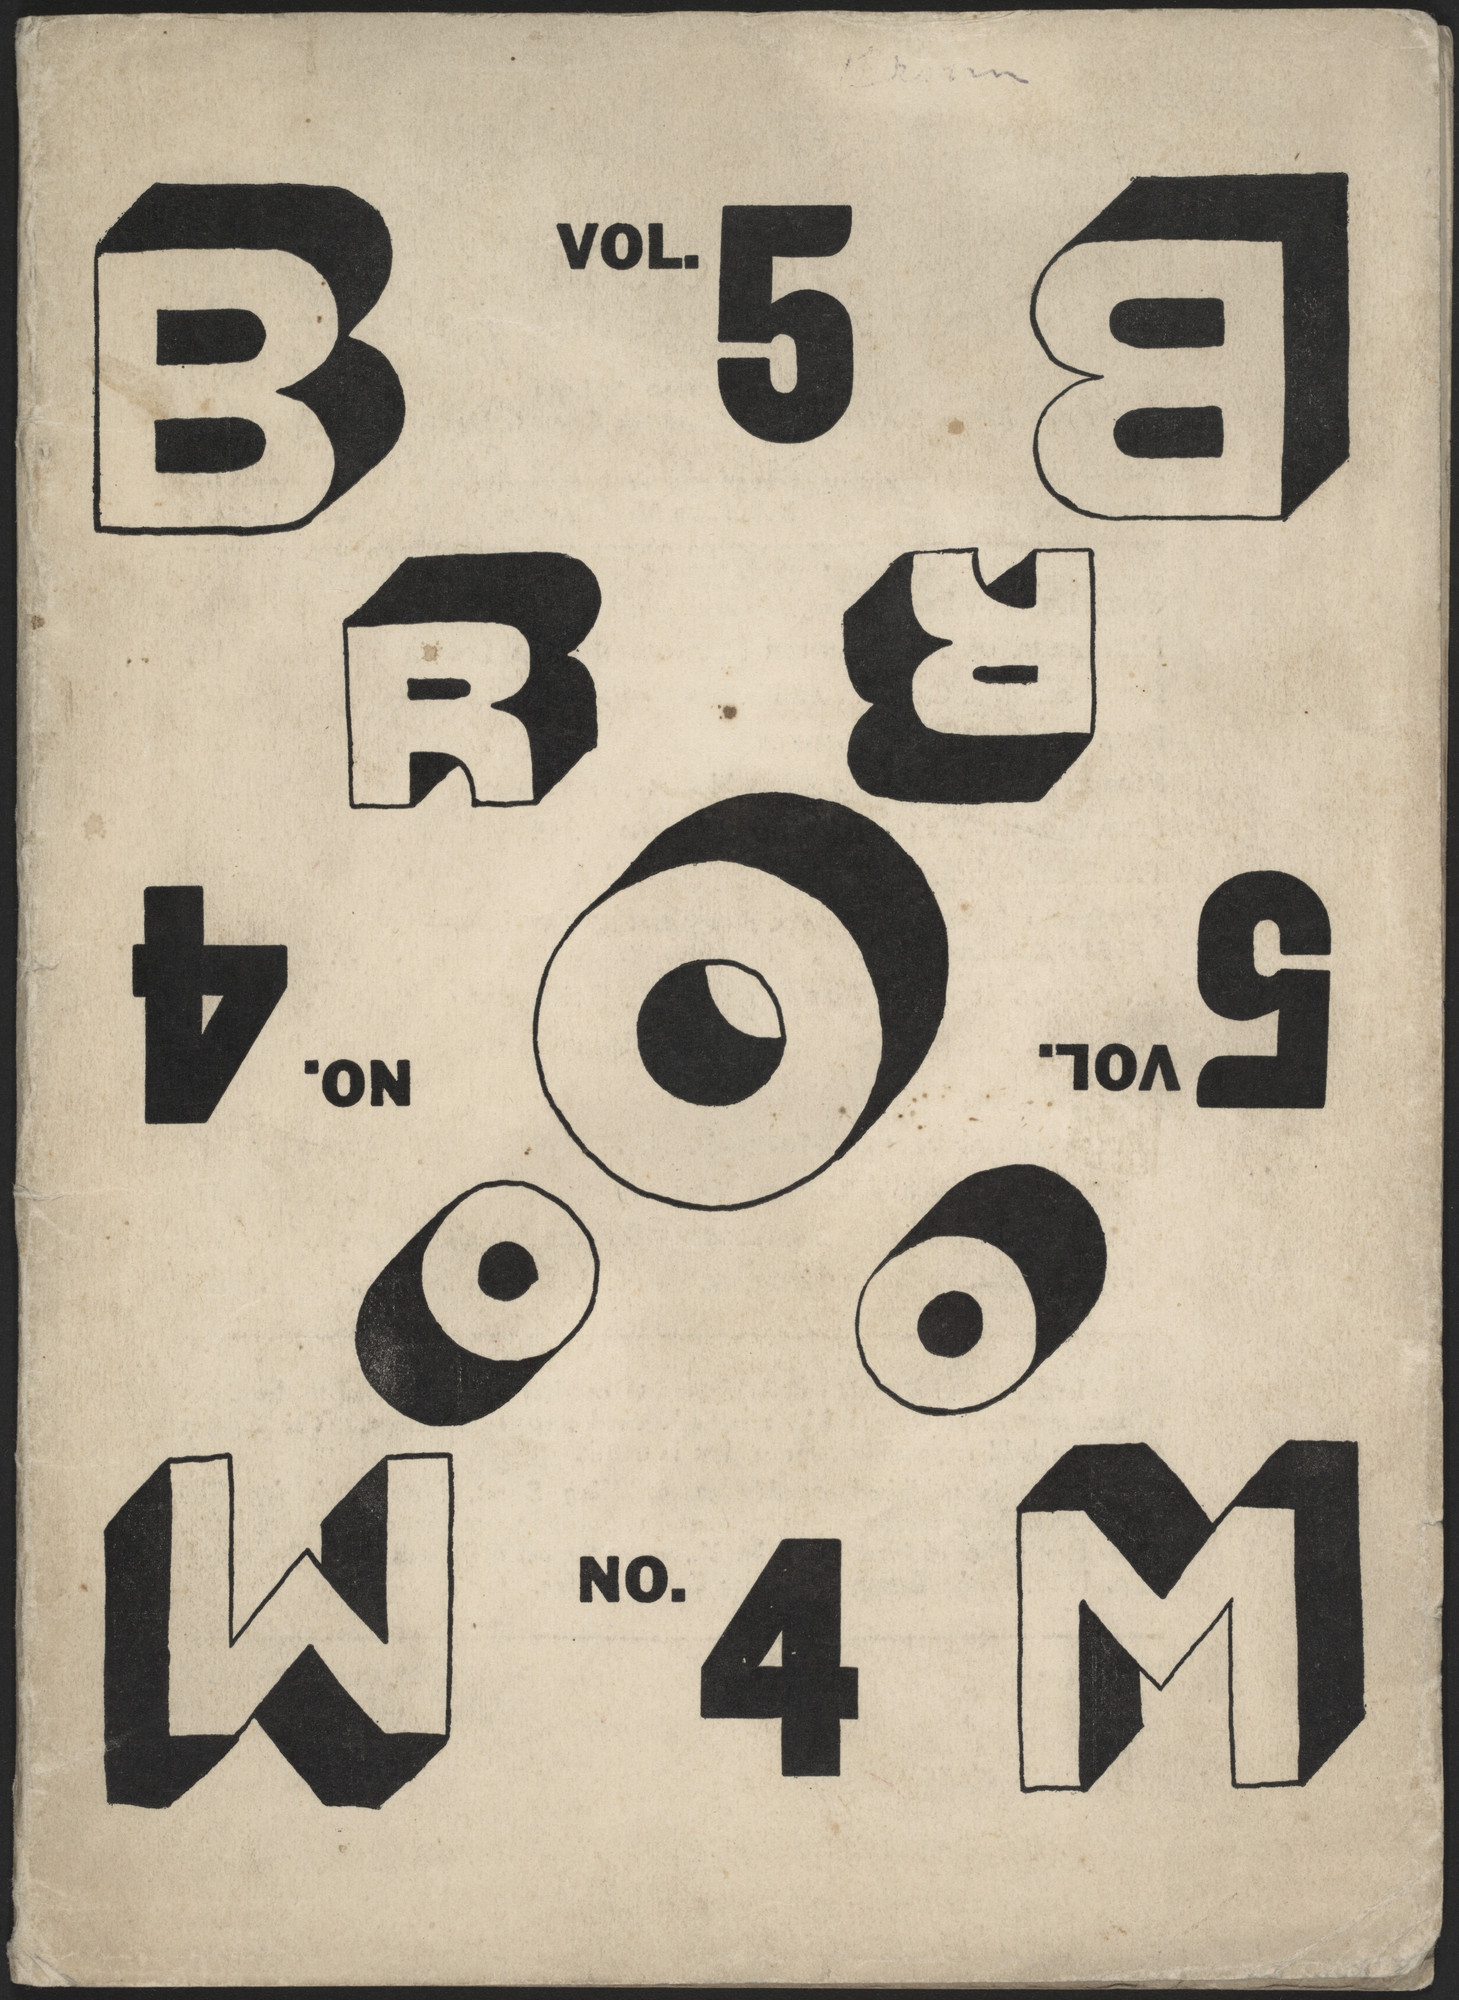 El Lissitzky. Broom, vol. 5, no. 4. 1923